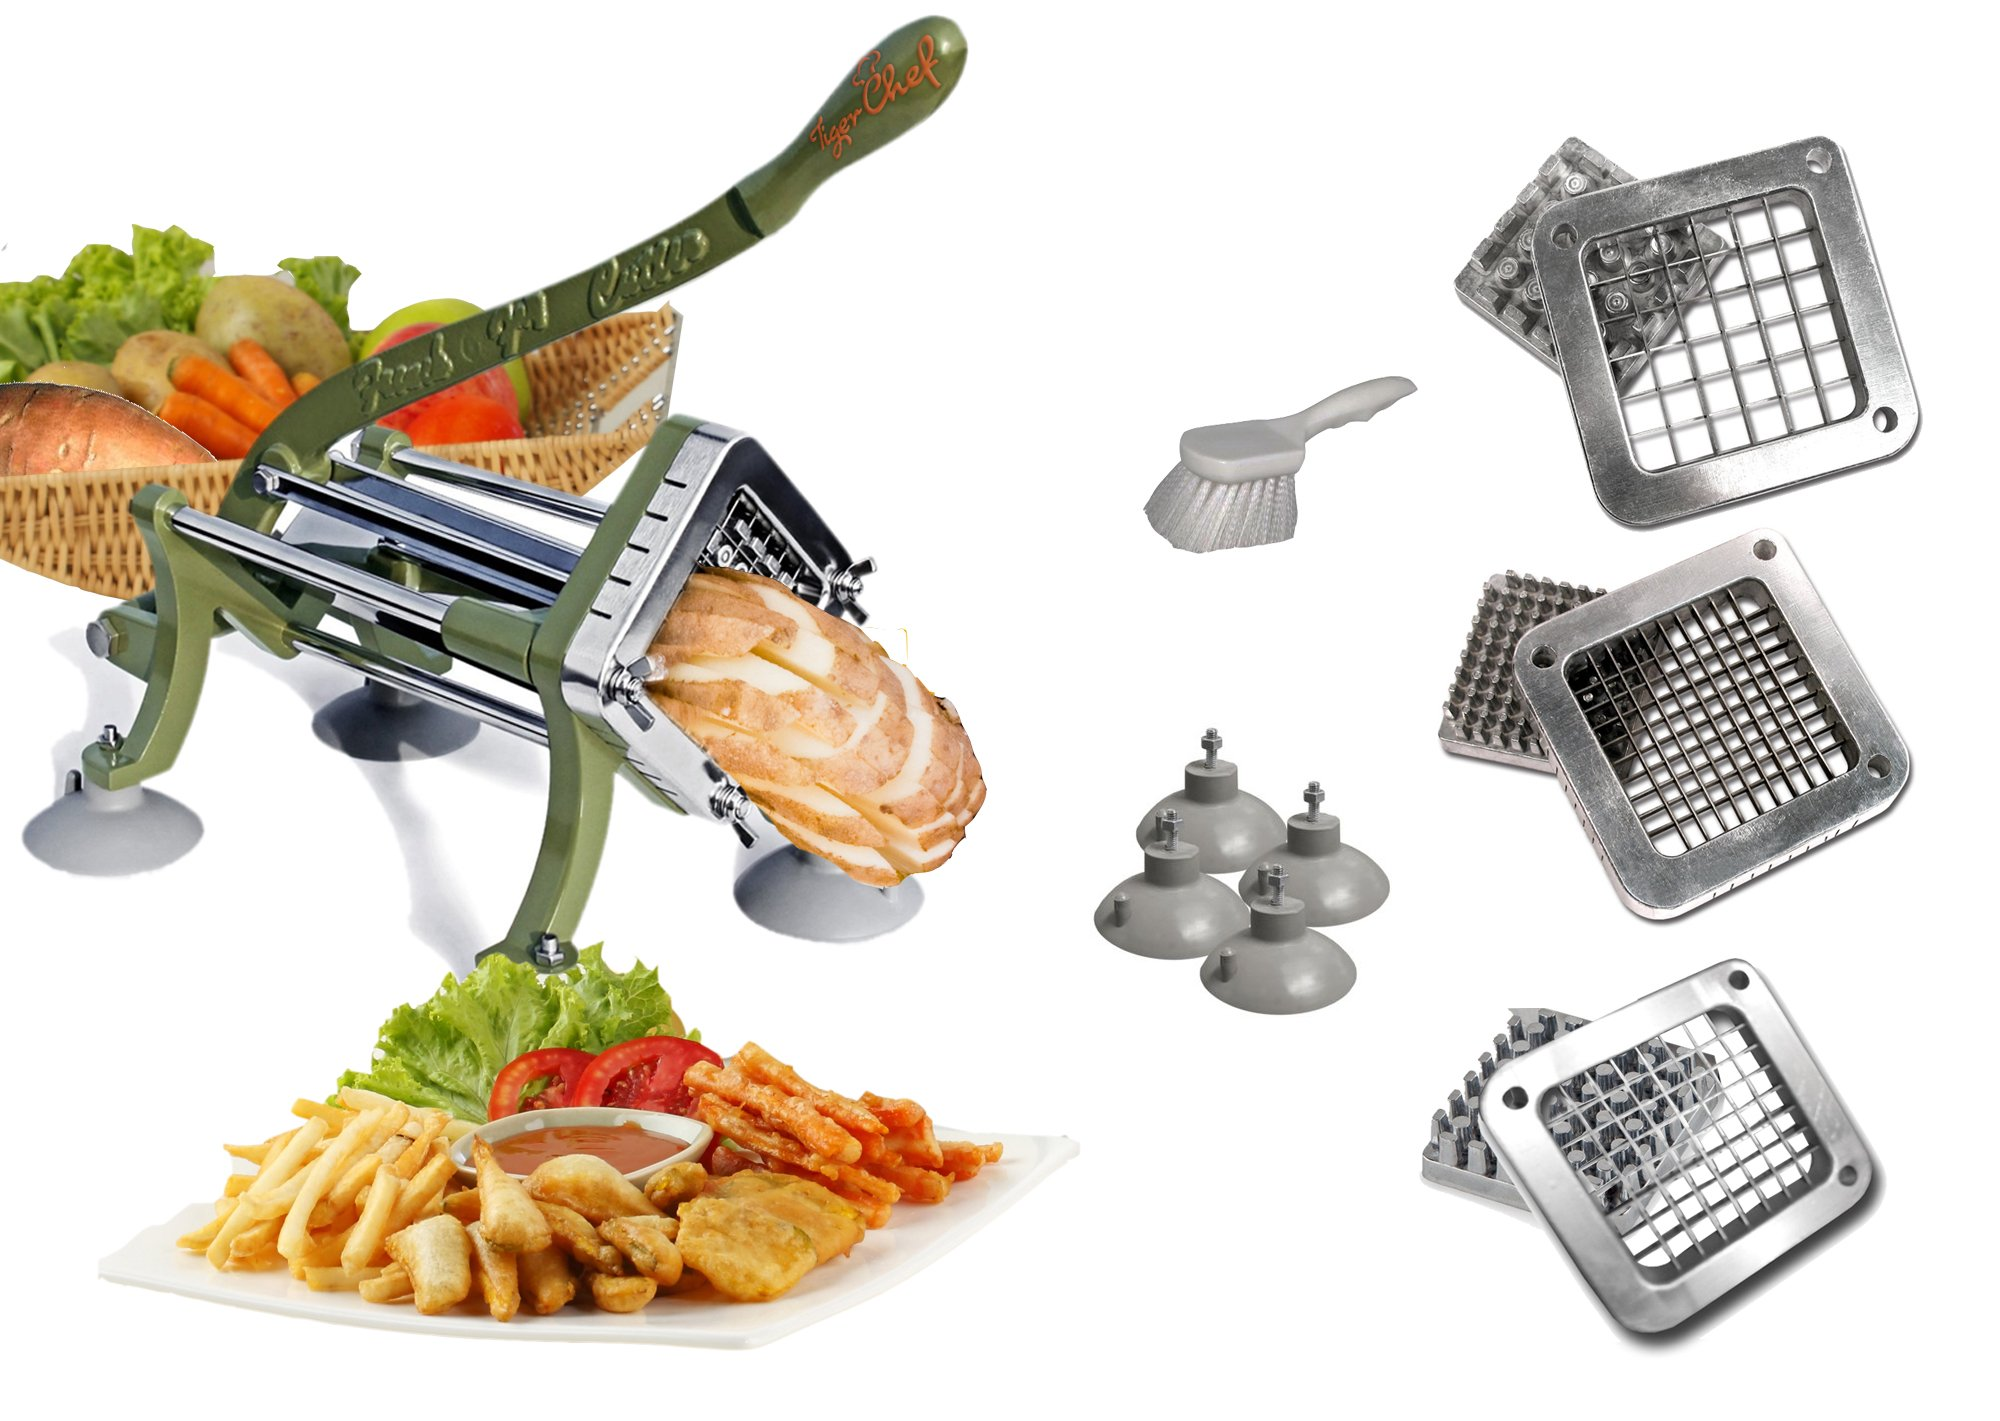 TigerChef TC-20562 Heavy Duty Potato French Fry Cutter Complete Set, Commercial Quality, Includes 1/4'', 3/8'' and 1/2'' Blades and Pusher Blocks, Suction Feet and Cleaning Brush